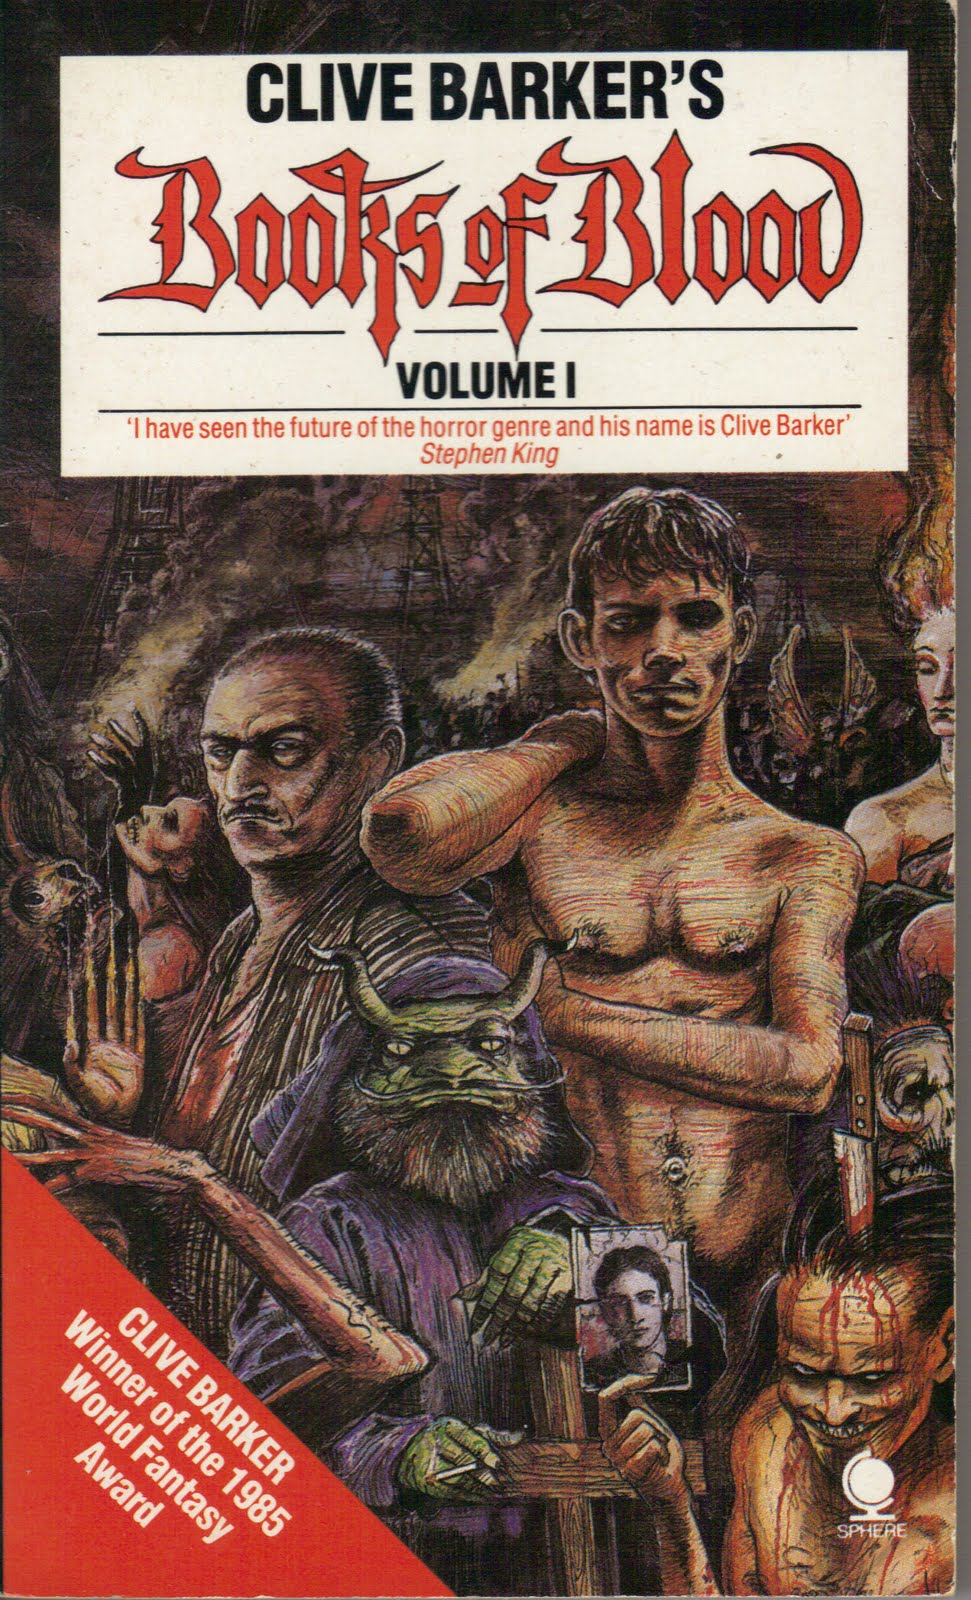 blood books barker clive volume vol 1984 horror too much author horrornews fiction sphere paperback head